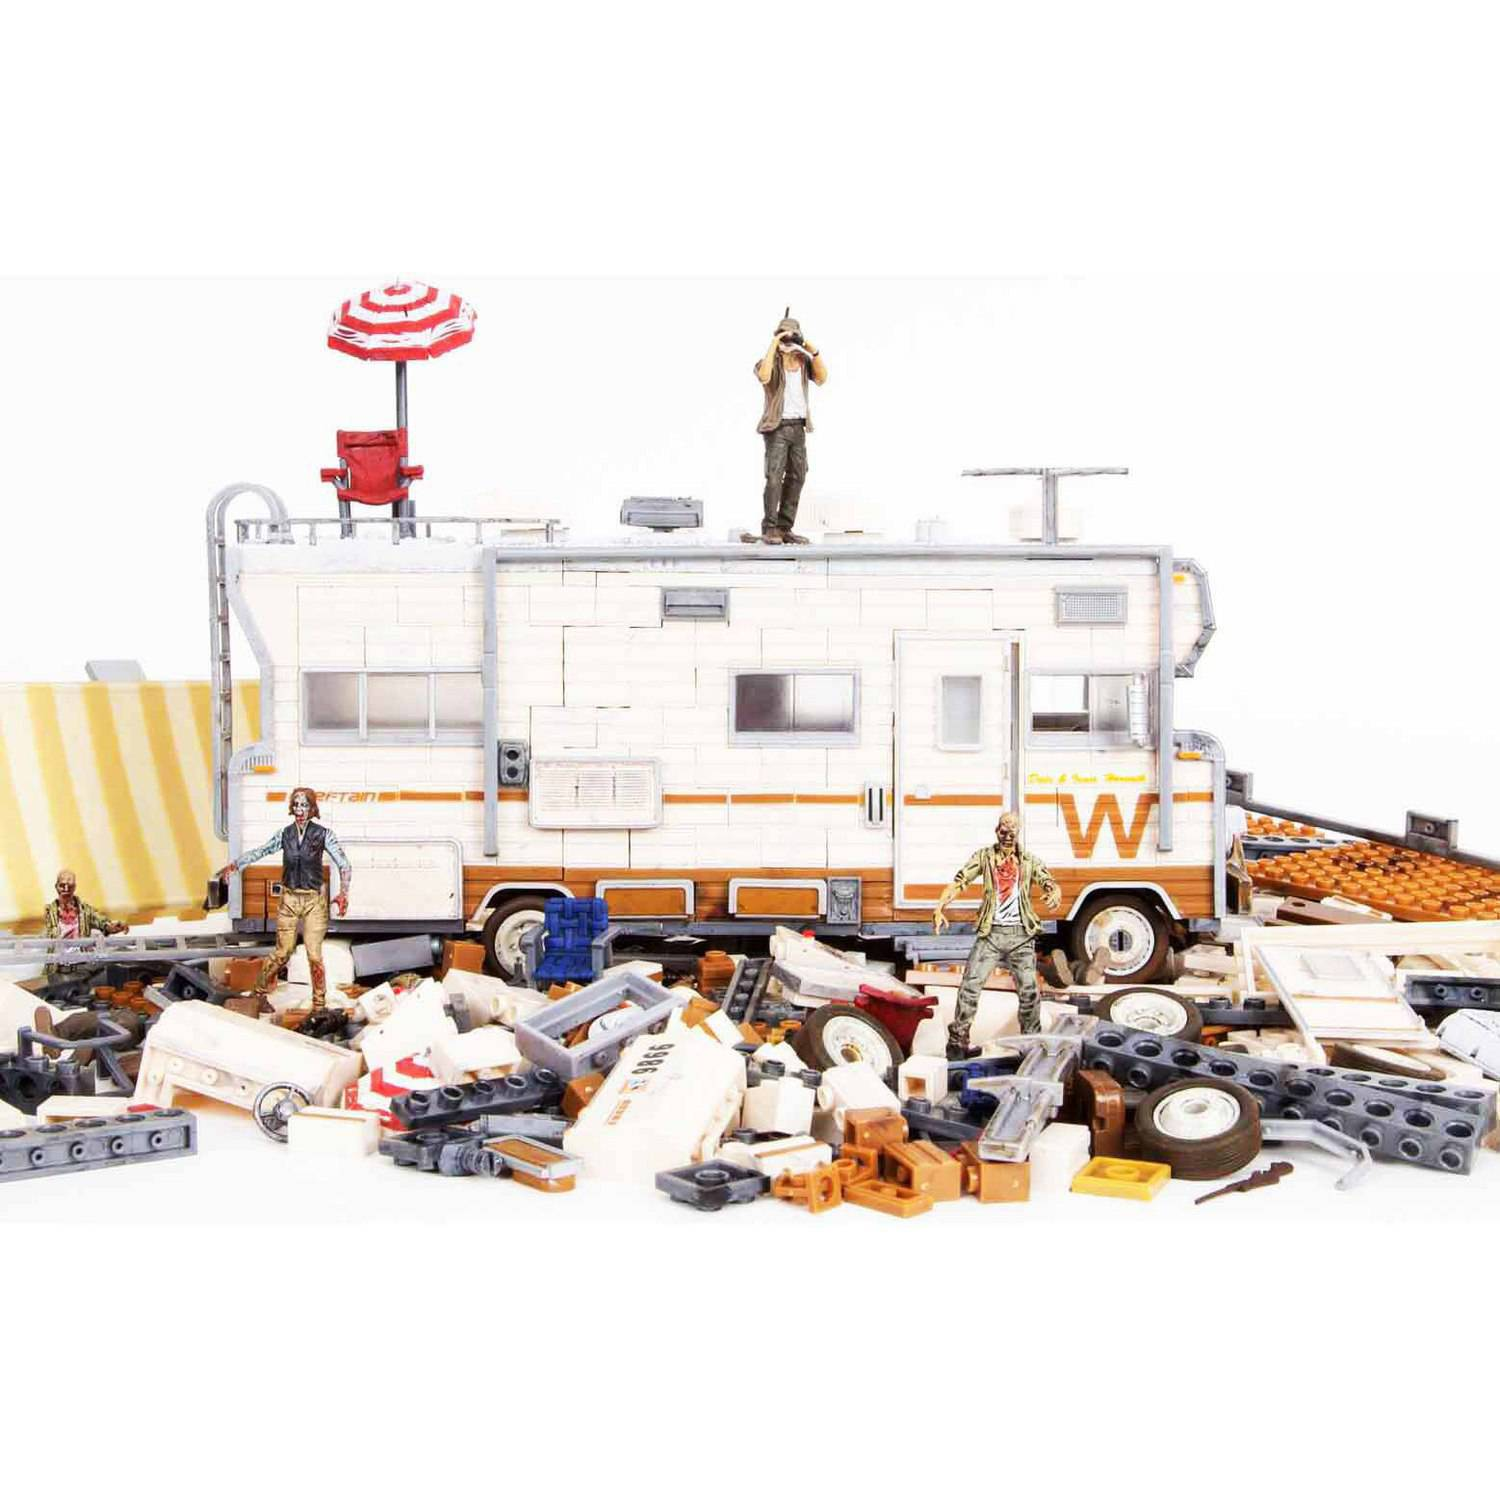 McFarlane Toys' The Walking Dead Dale's RV Construction Set